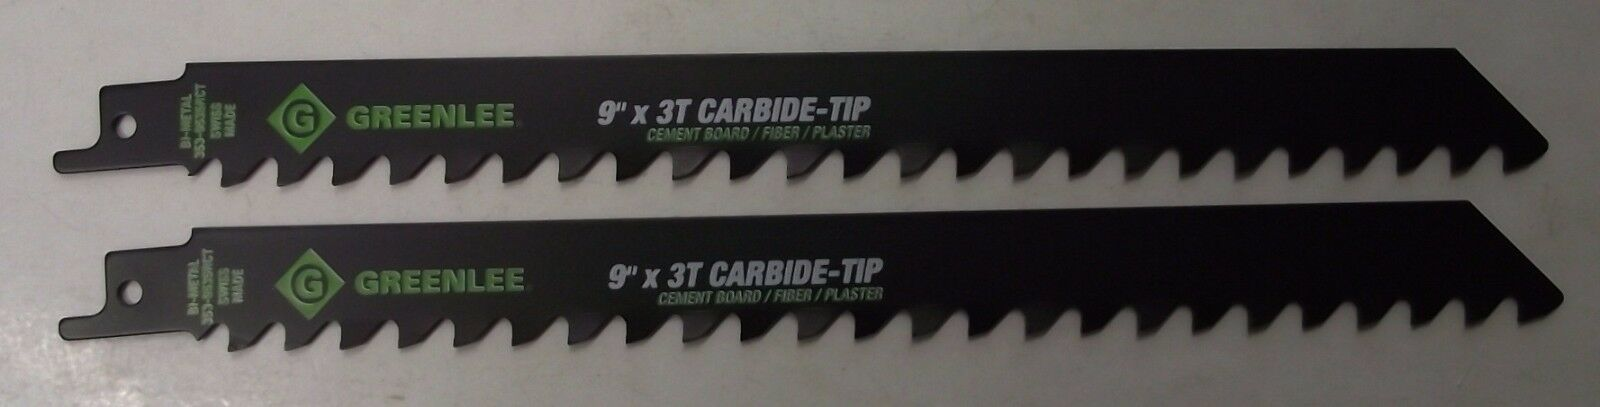 "Primary image for Greenlee 353-9535RCT 9"" x 3TPI Carbide Tipped Recip Saw Blades 2pcs Bulk Swiss"